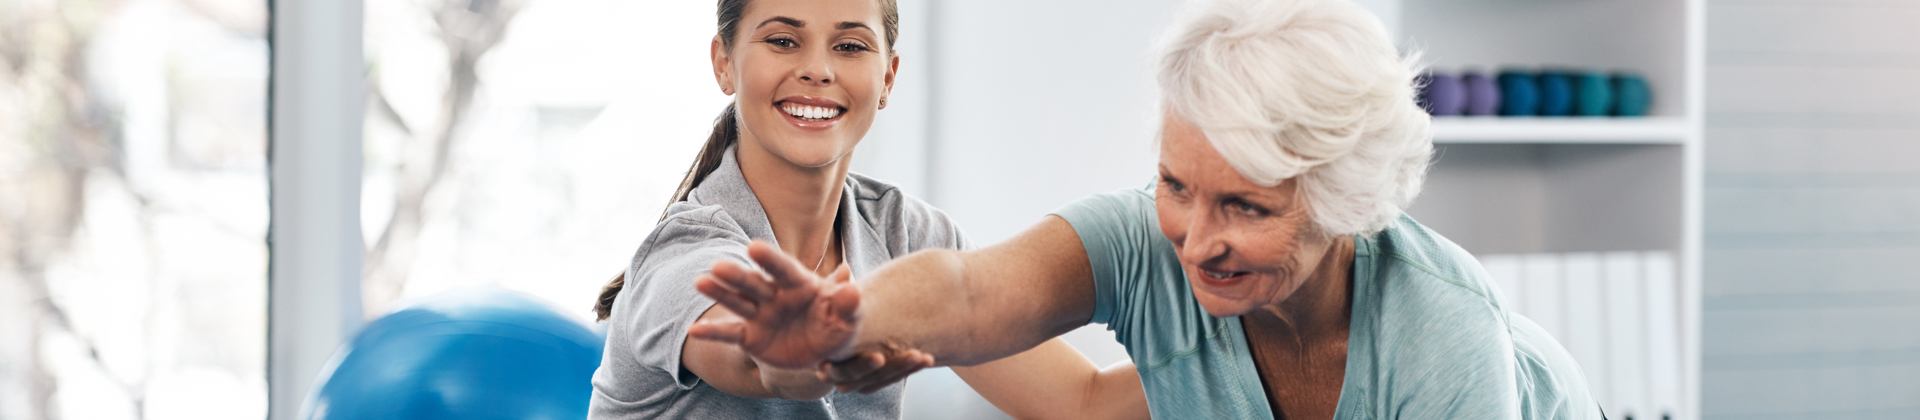 A physical therapist helps a senior woman do yoga stretches